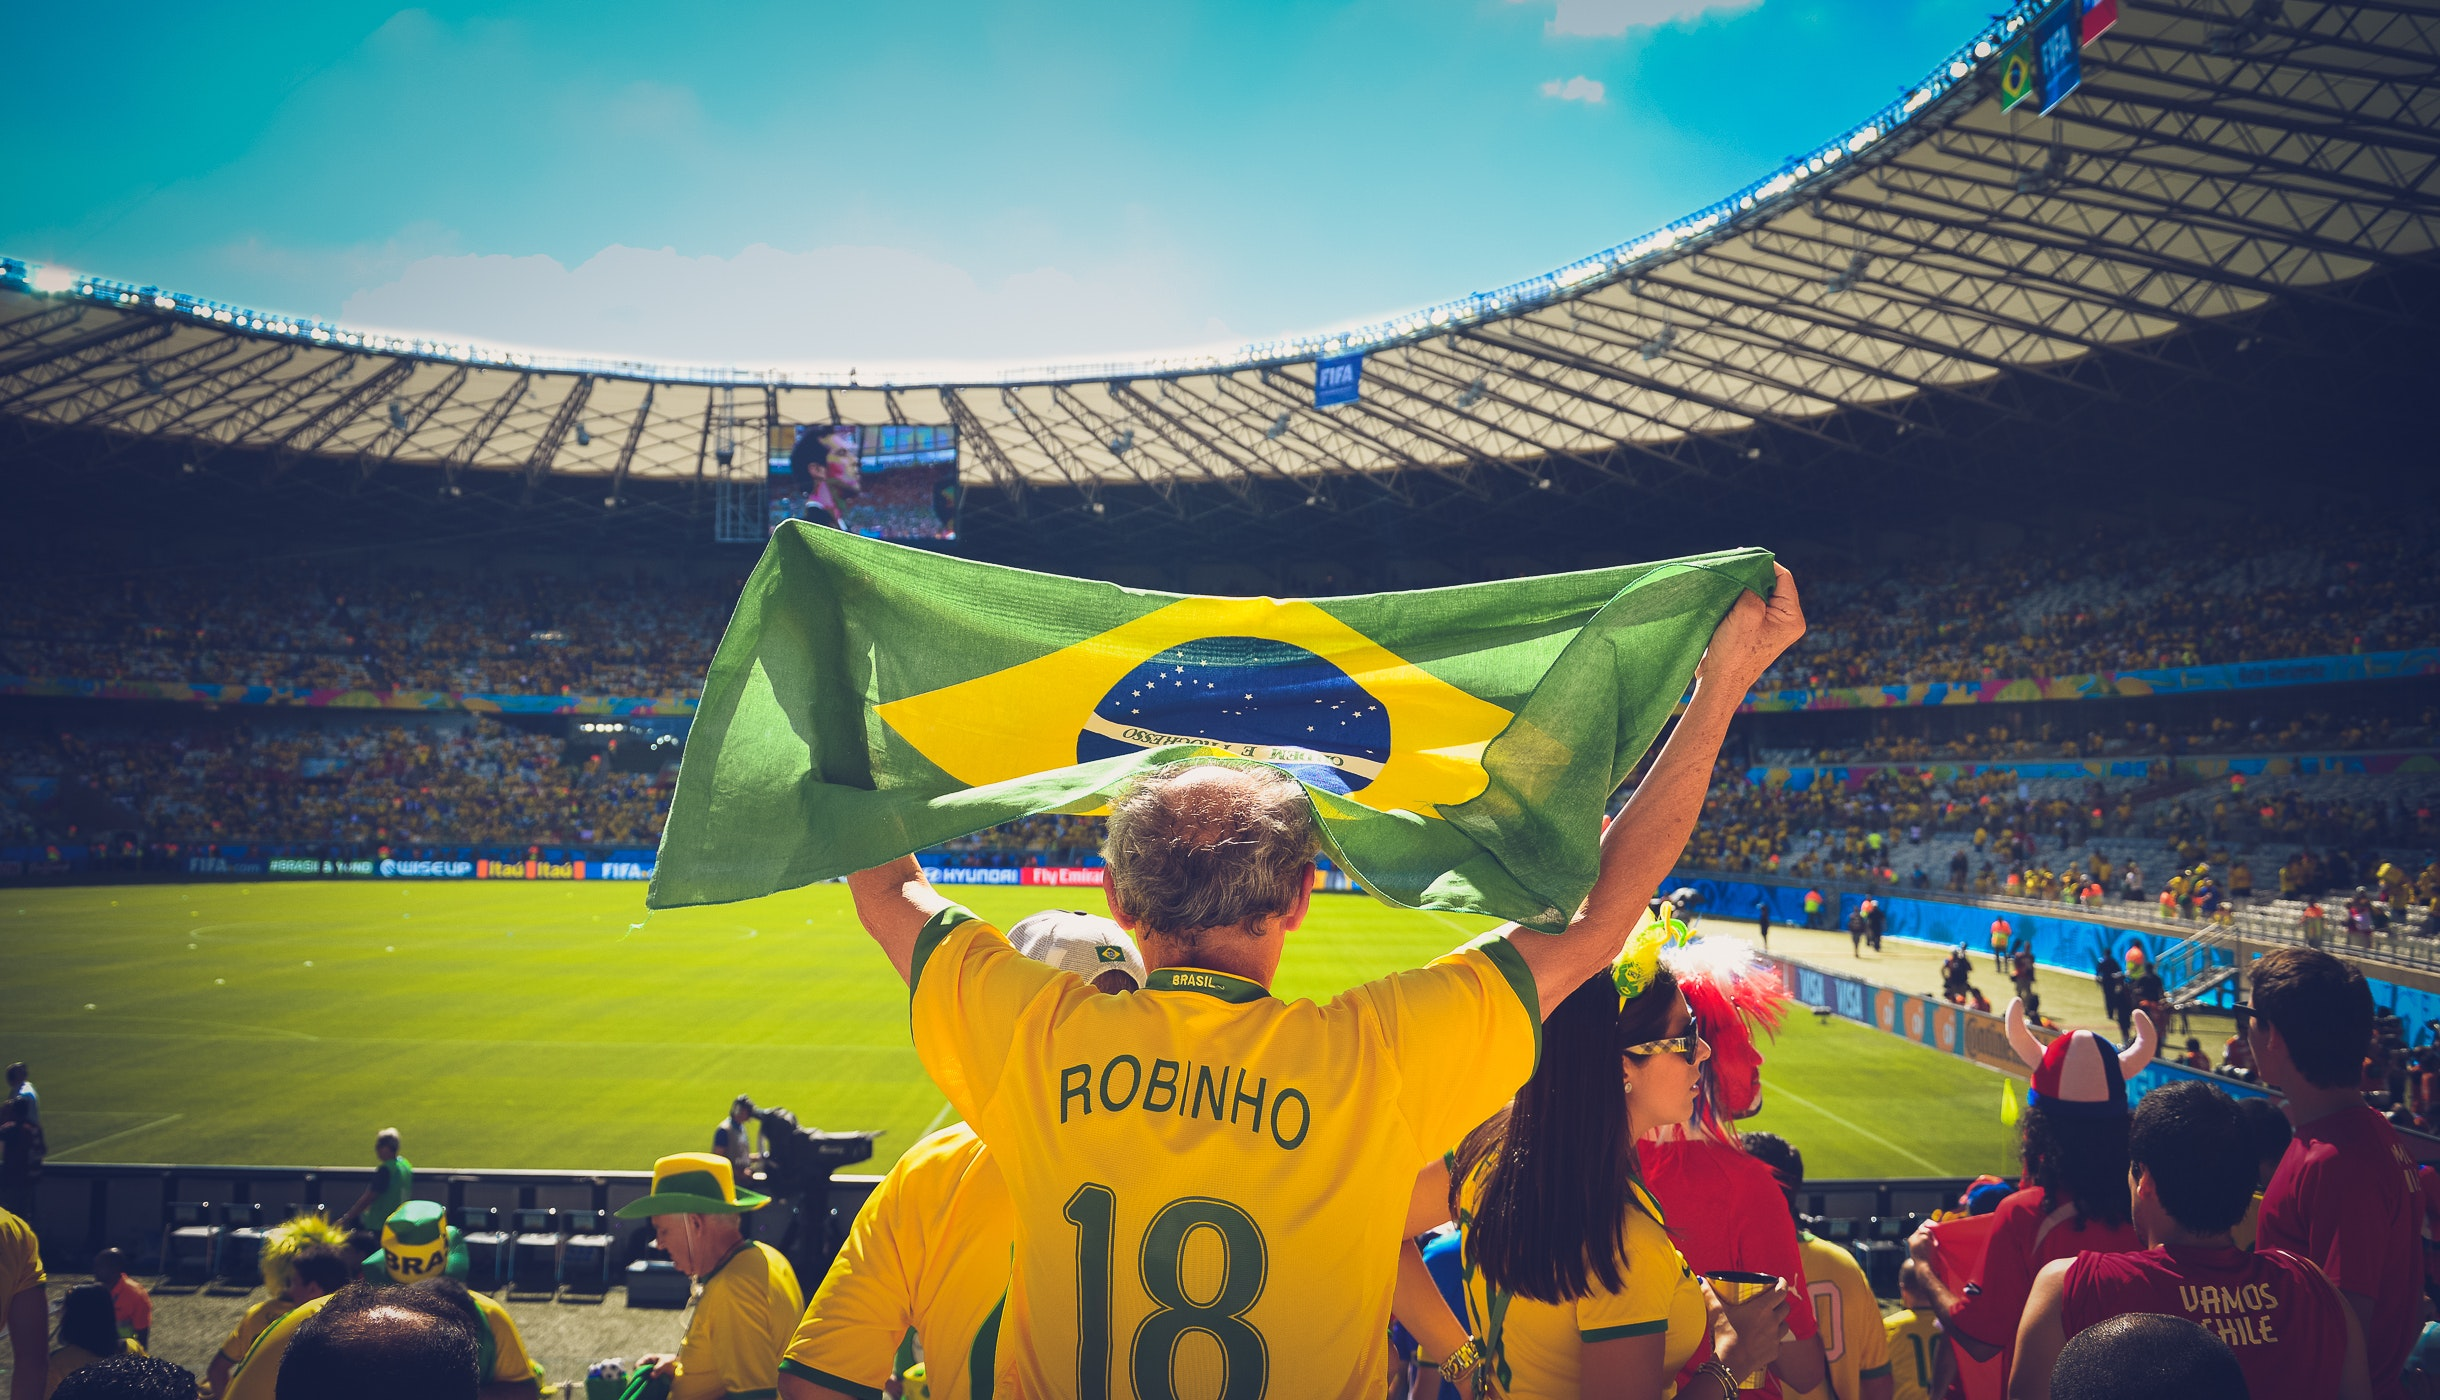 Image of a futbol fan in Brazil